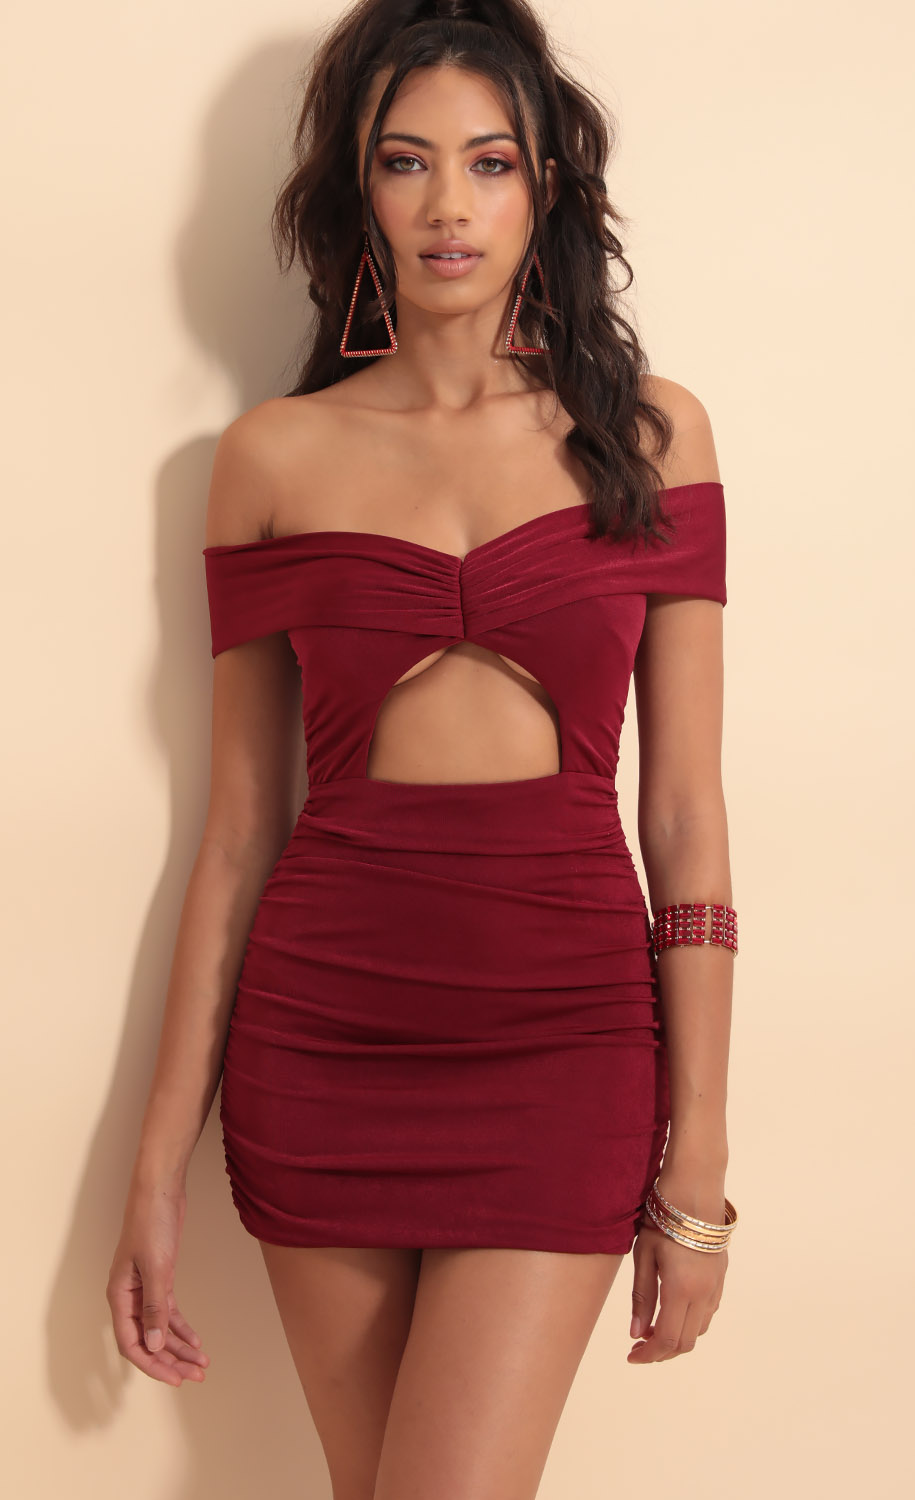 Anneliese Luxe Cutout Dress in Merlot